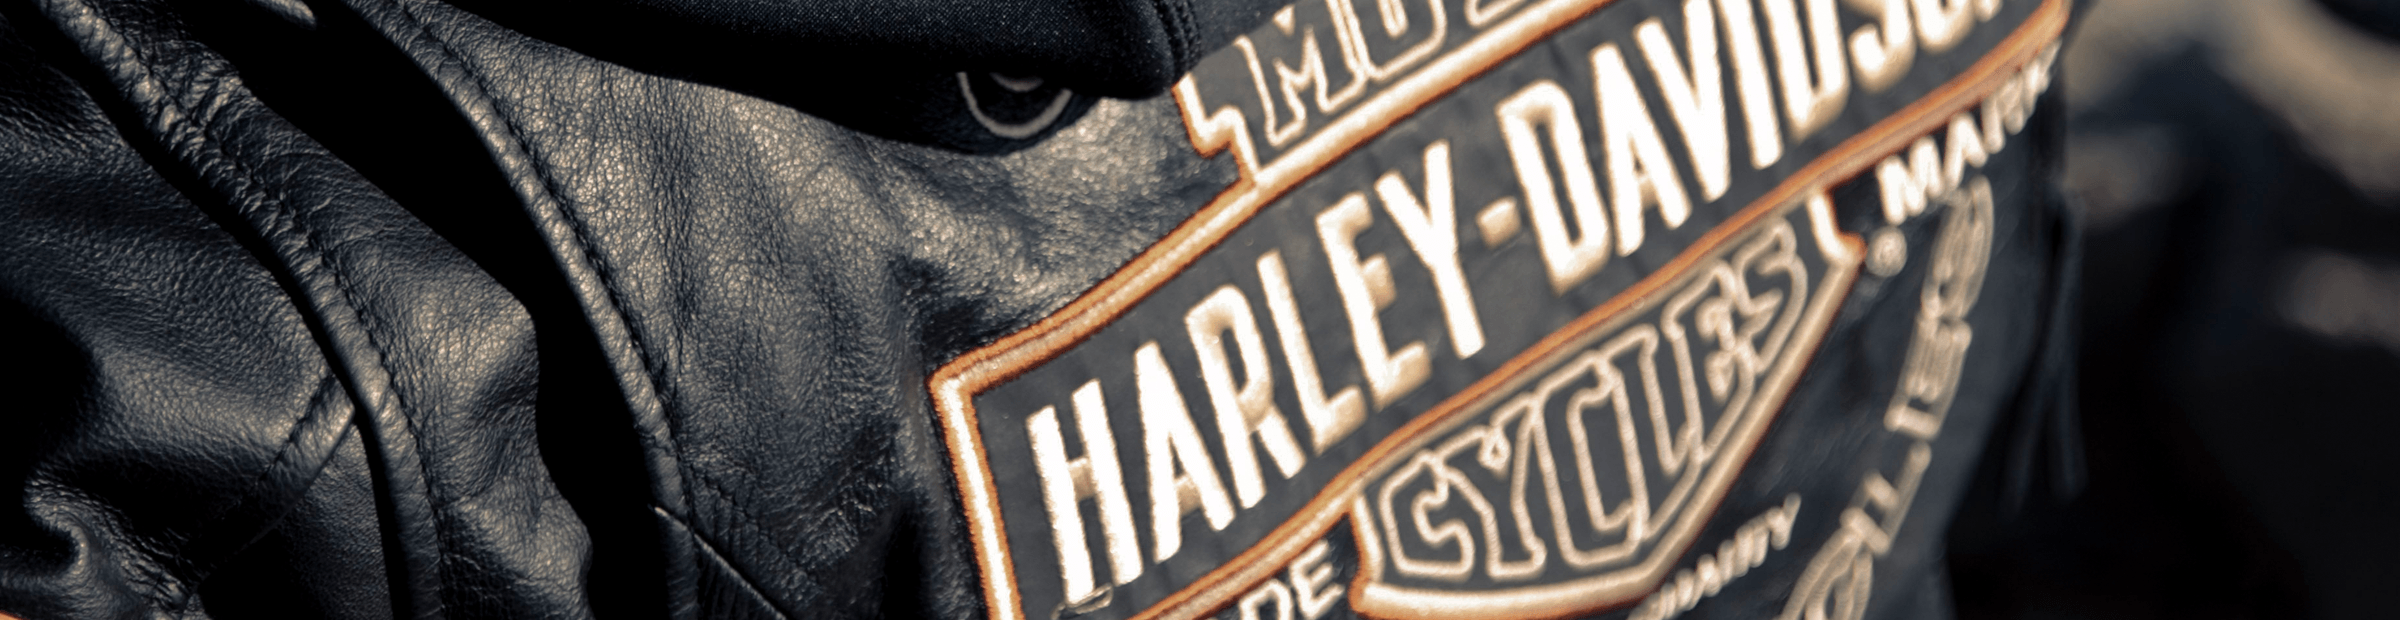 Harley-Davidson of Panama City Beach Mobile Club